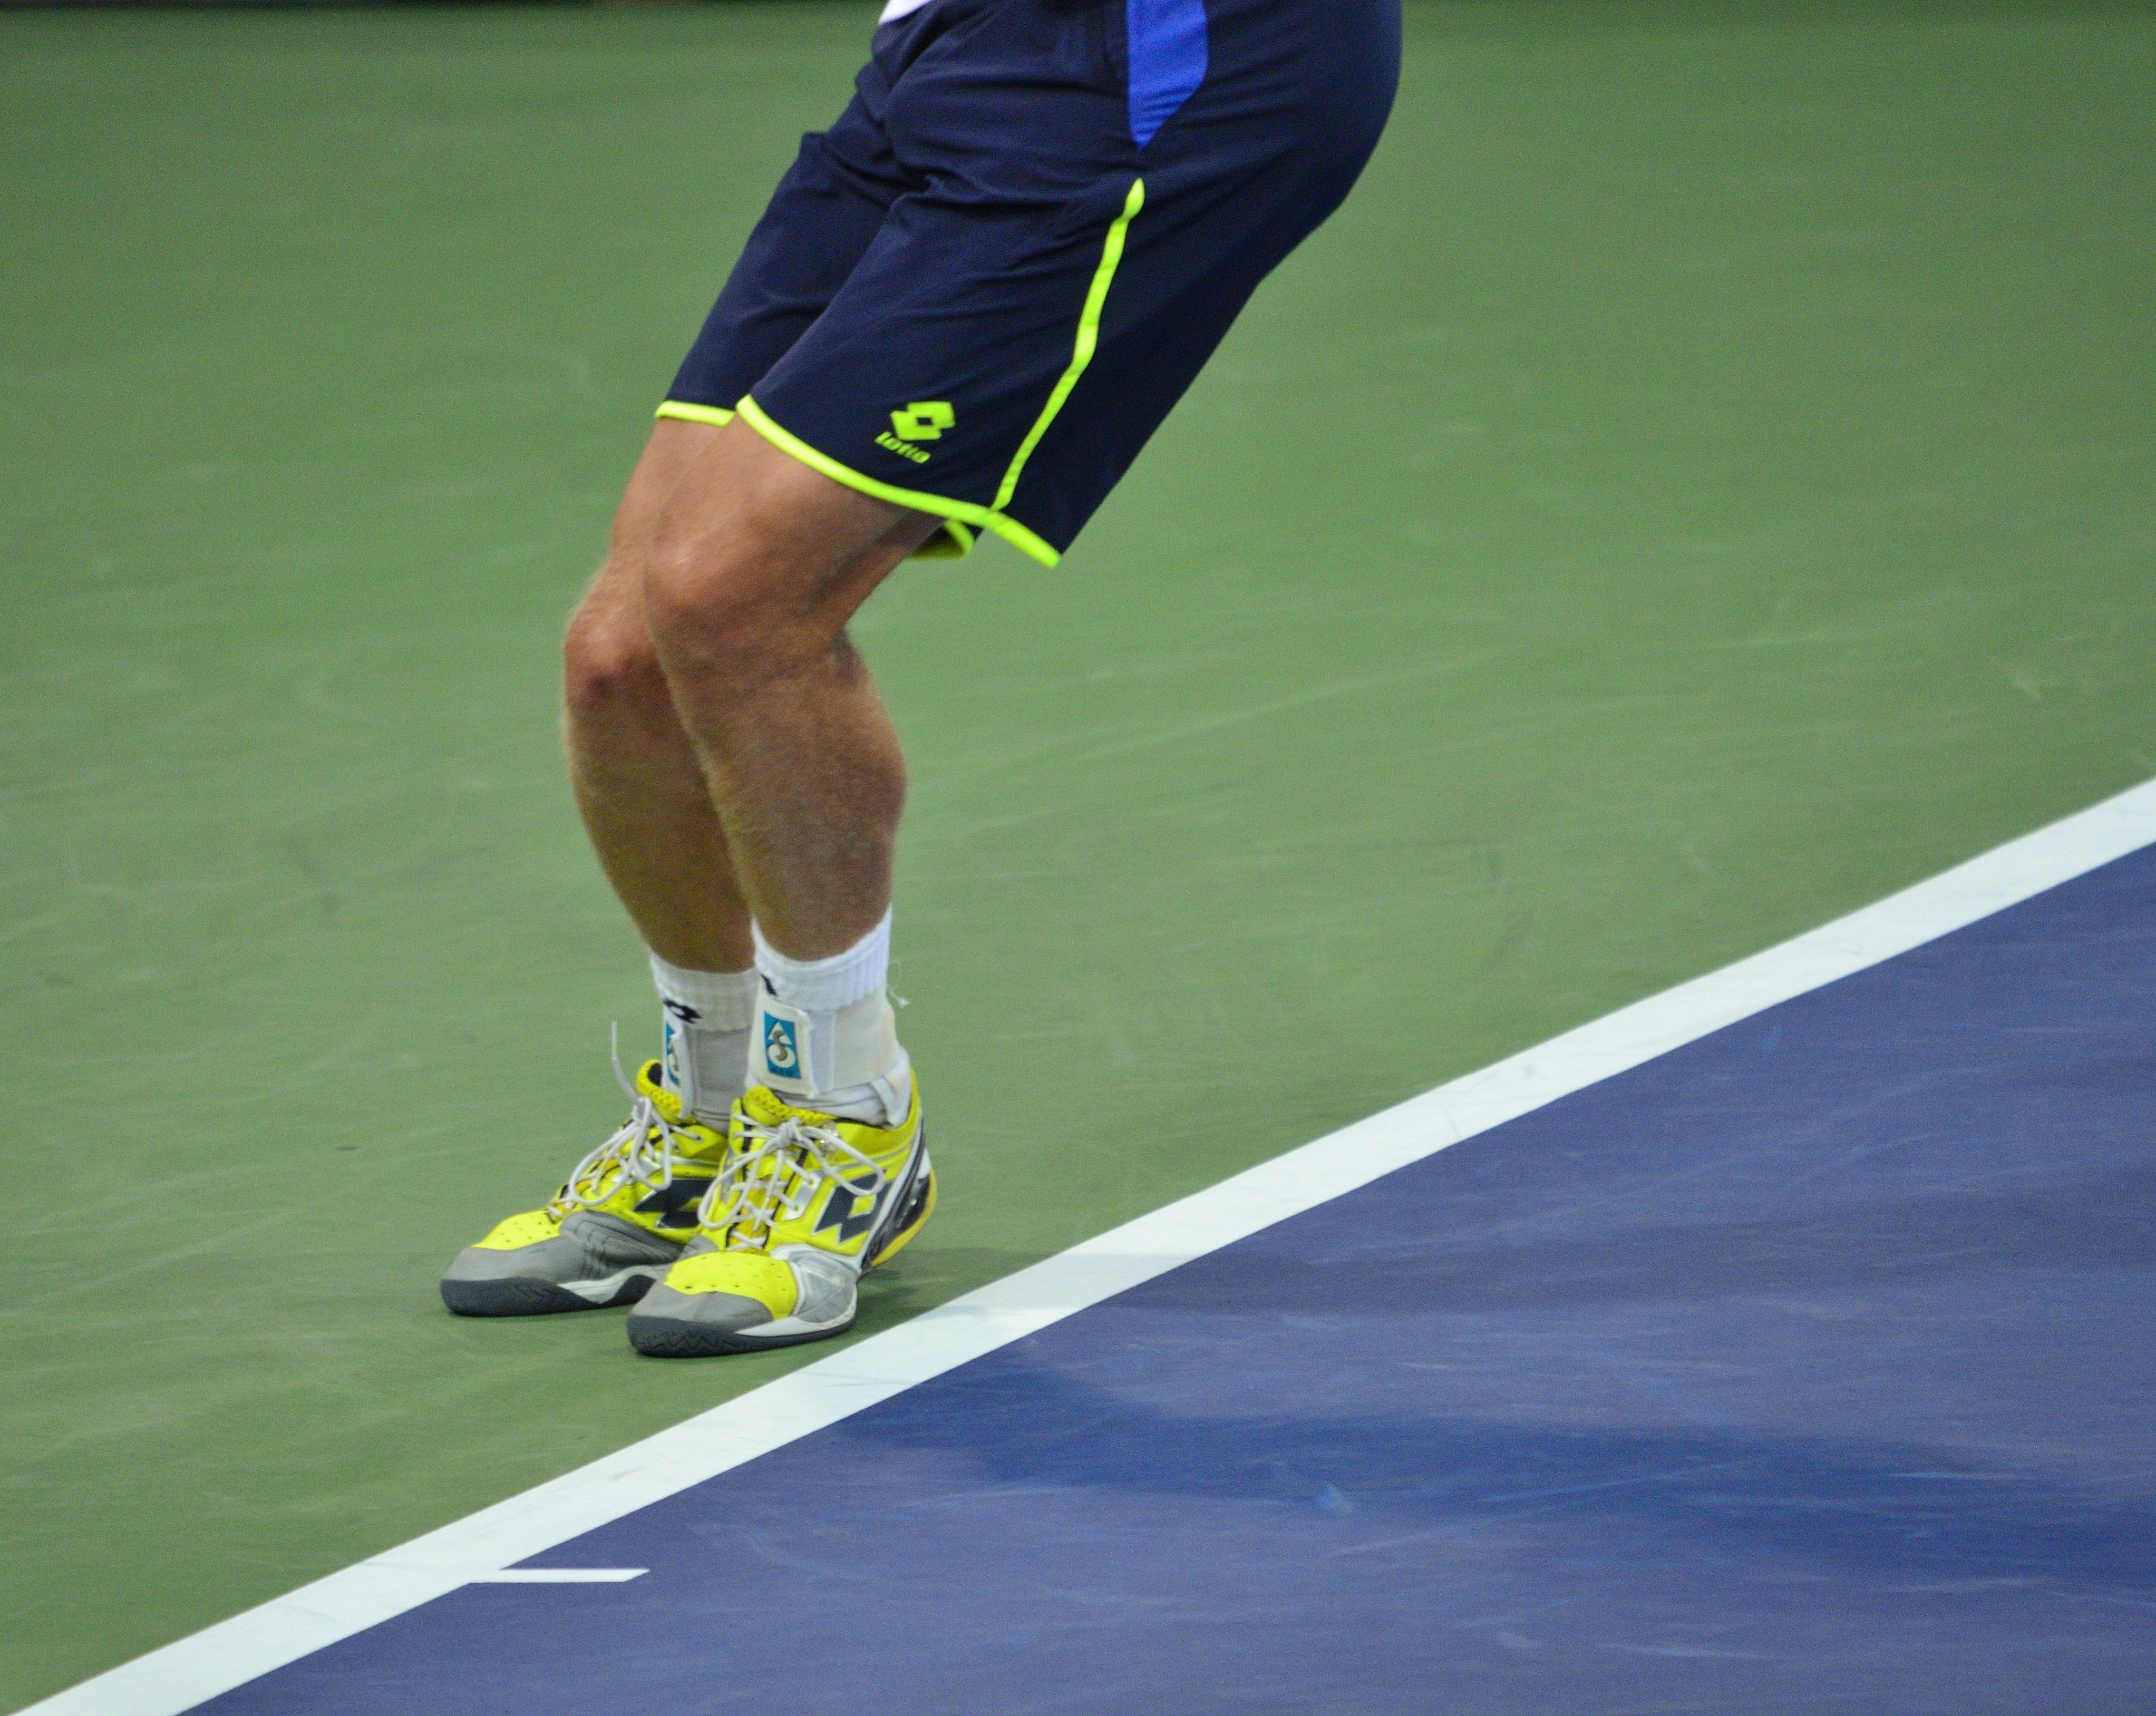 2013_US_Open_(Tennis)_-_Kevin_Anderson_(9651180662)